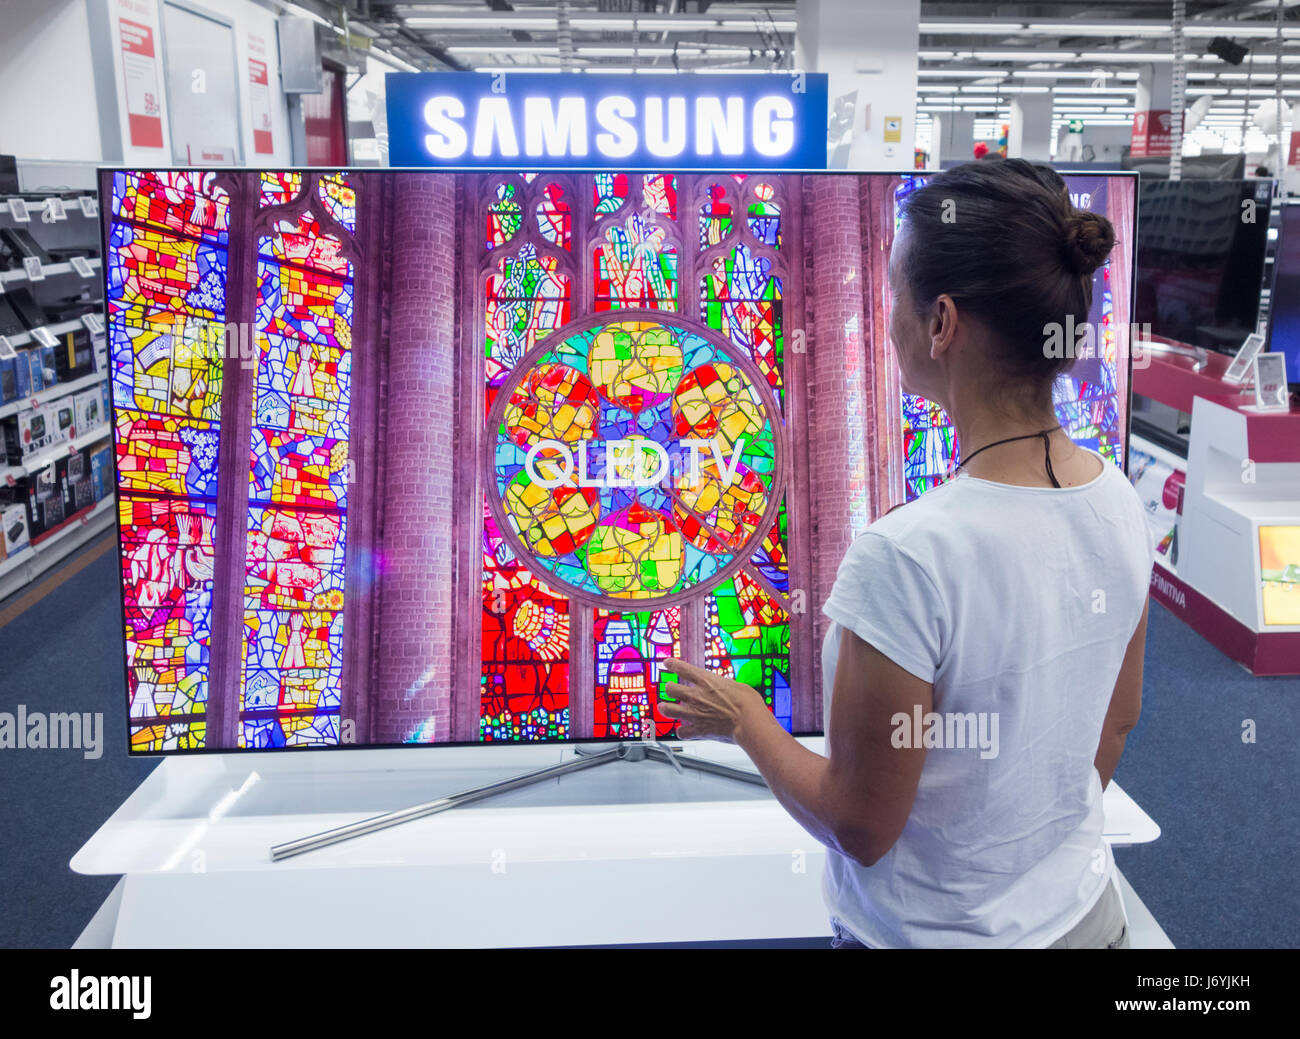 Woman looking at Samsung QLED TV in electrical store. - Stock Image